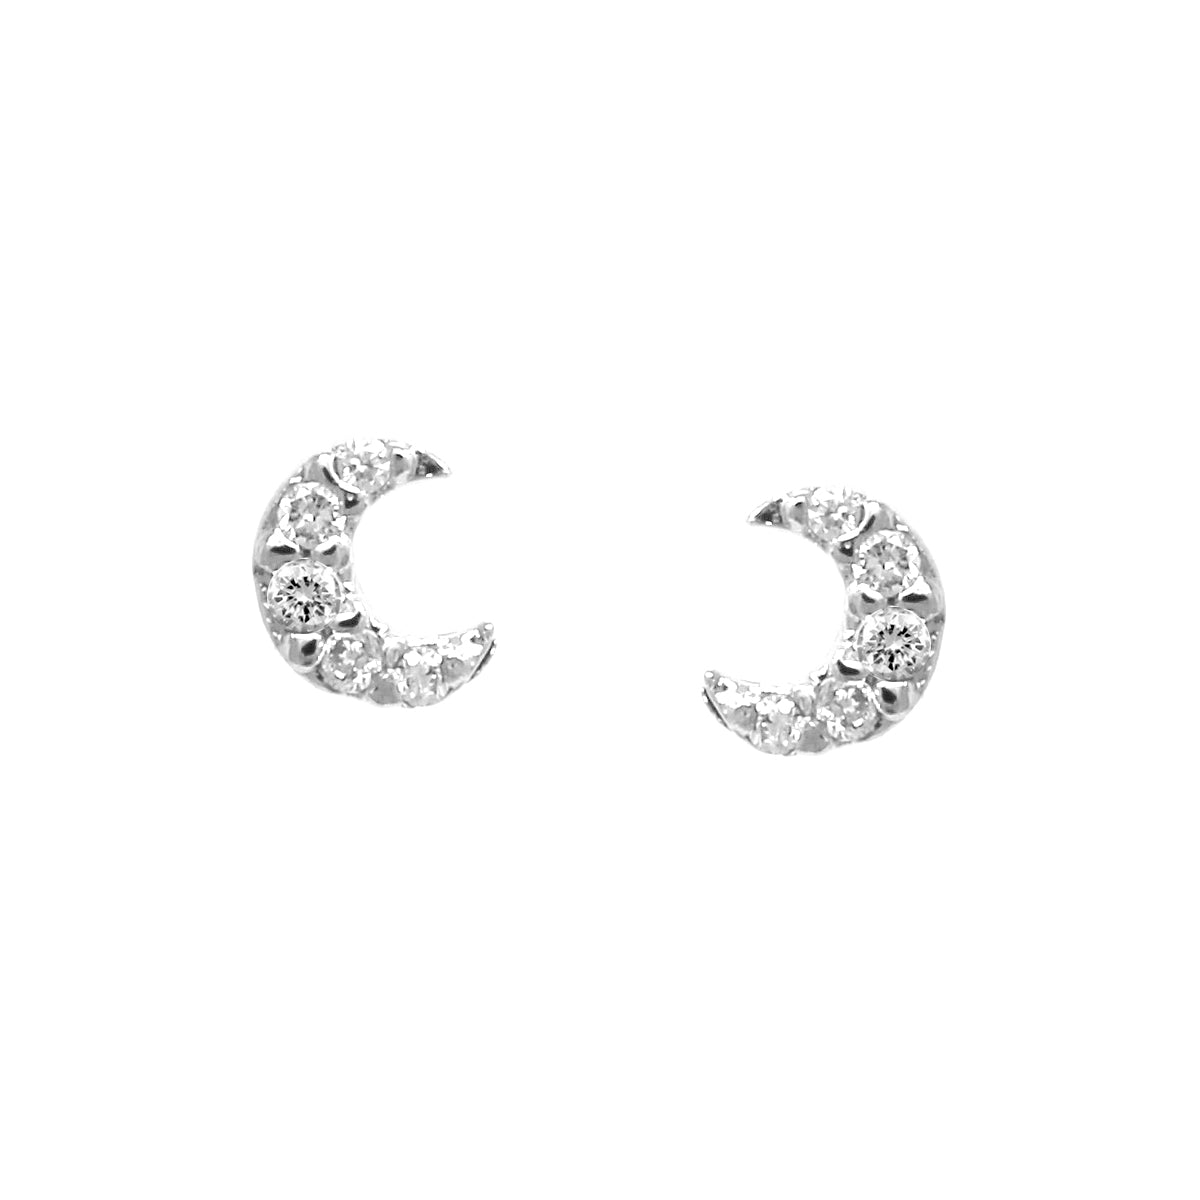 Cubic Zirconia Pave Tiny Crescent Moon Stud Earrings